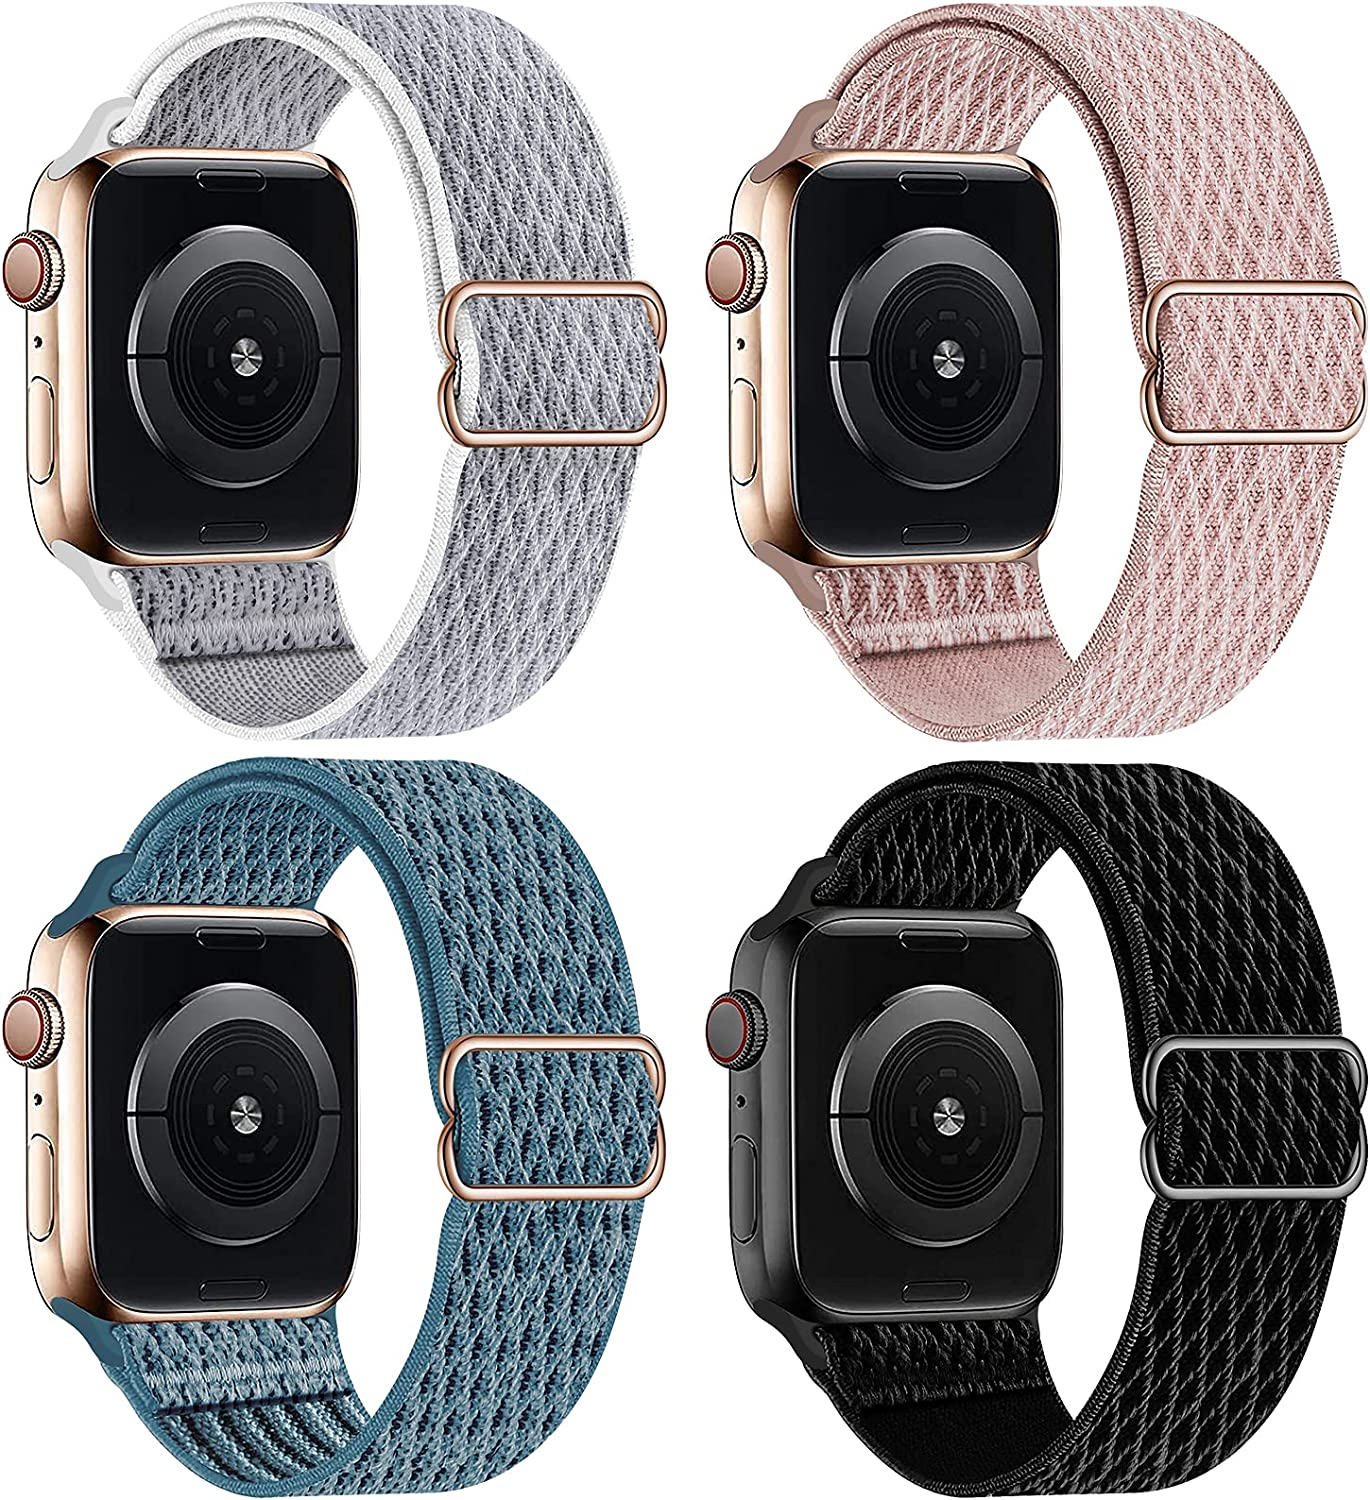 HILIMNY Elastic Braided Sport Solo Loop Compatible with Apple Watch Band 42mm 44mm, Stretchy Adjustable Nylon Men Women Strap Replacement Compatible with iWatch Series 6/5/4/3/2/1 SE, 4 Pack